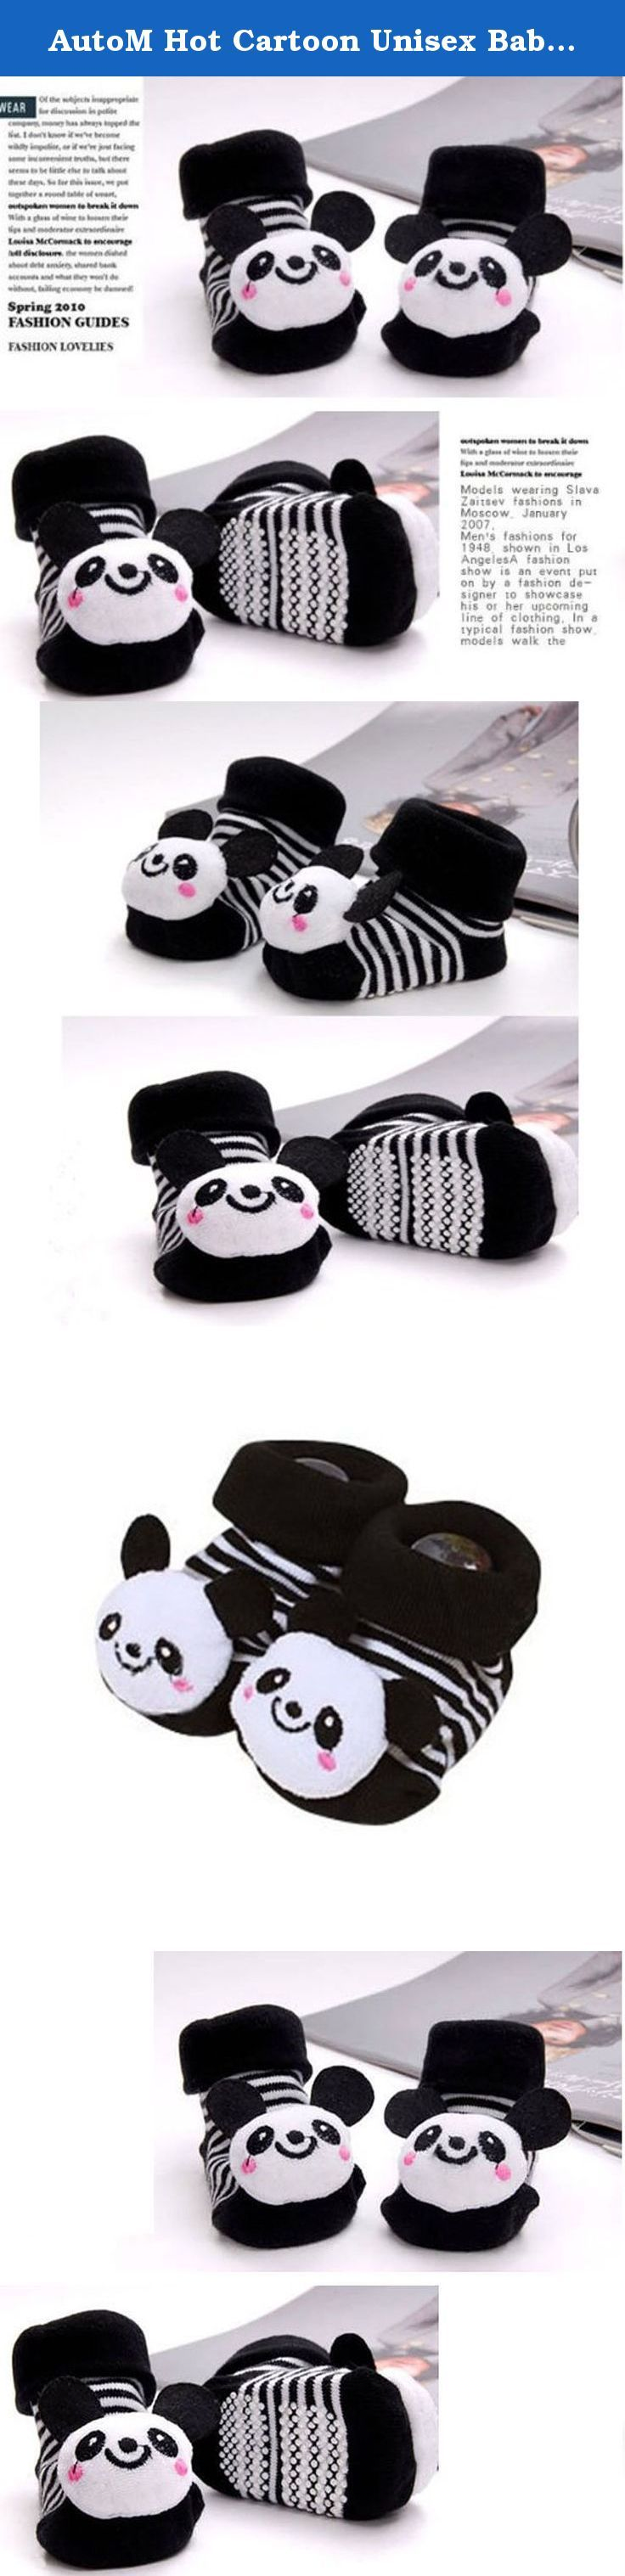 AutoM Hot Cartoon Unisex Baby Girl Boy Anti-slip Socks Slipper Shoes Boots 0-12 Month (Black White Panda). 1. Condition: New Arrival with High Quality 2. Style: Lovely style with Pretty Color 3. Suit for: Baby Boy Girl 4. Design: as Picture Show 5. Material: 85% Cotton+15% Polyester+5% Spandex 6. Size: One Size(Buttom Length: 10CM / 3.9inch) 7. Fit for 0-12 Month Baby, Foot Length about 7-9CM (2.76-3.54inch) 8. Sock Buttom with Small Anti-Skidding Granule 9. Cartoon Picture is Stick on it...